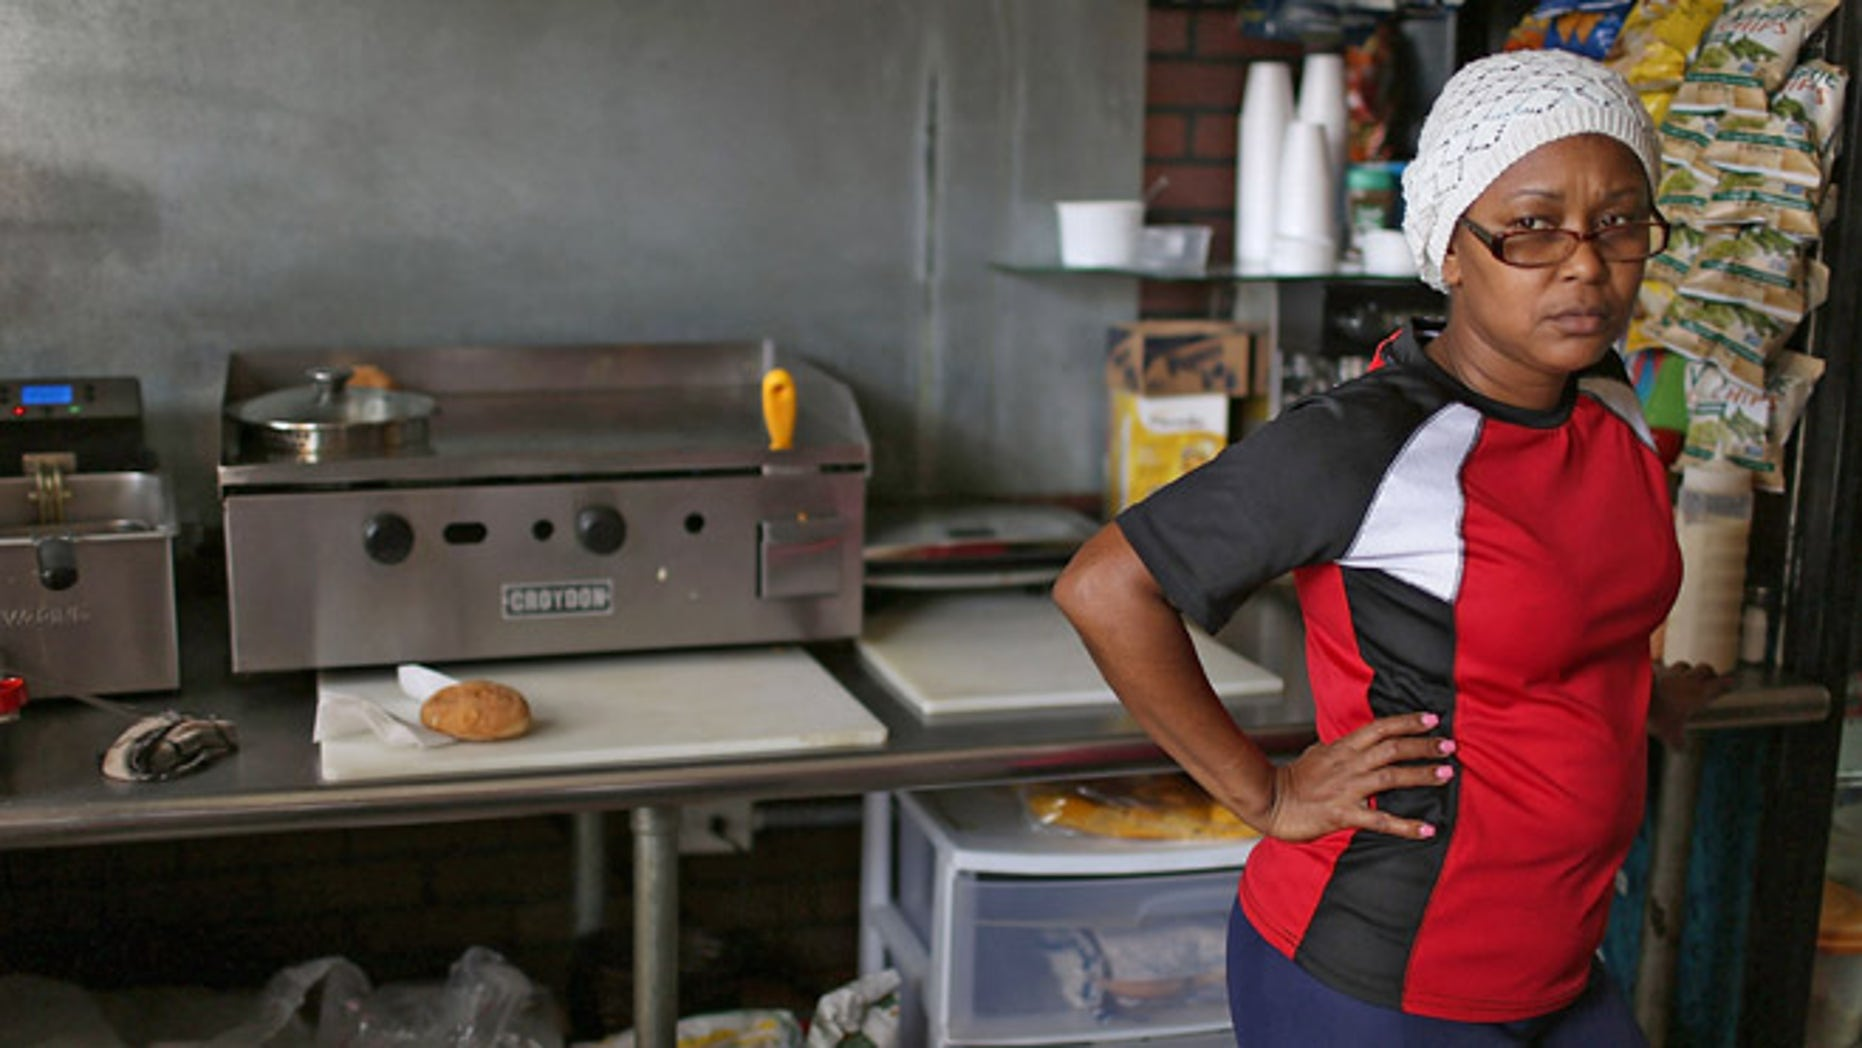 SAN JUAN, PUERTO RICO - JUNE 30:  Rosaura Guzman waits for customers at John Cafe a day after Puerto Rican Governor Alejandro Garcia Padilla gave a televised speech regarding the governments $72 billion debt on June 30, 2015 in San Juan, Puerto Rico.  The Governor said in his speech that the people will have to sacrifice and share in the responsibilities for pulling the island out of debt.  (Photo by Joe Raedle/Getty Images)